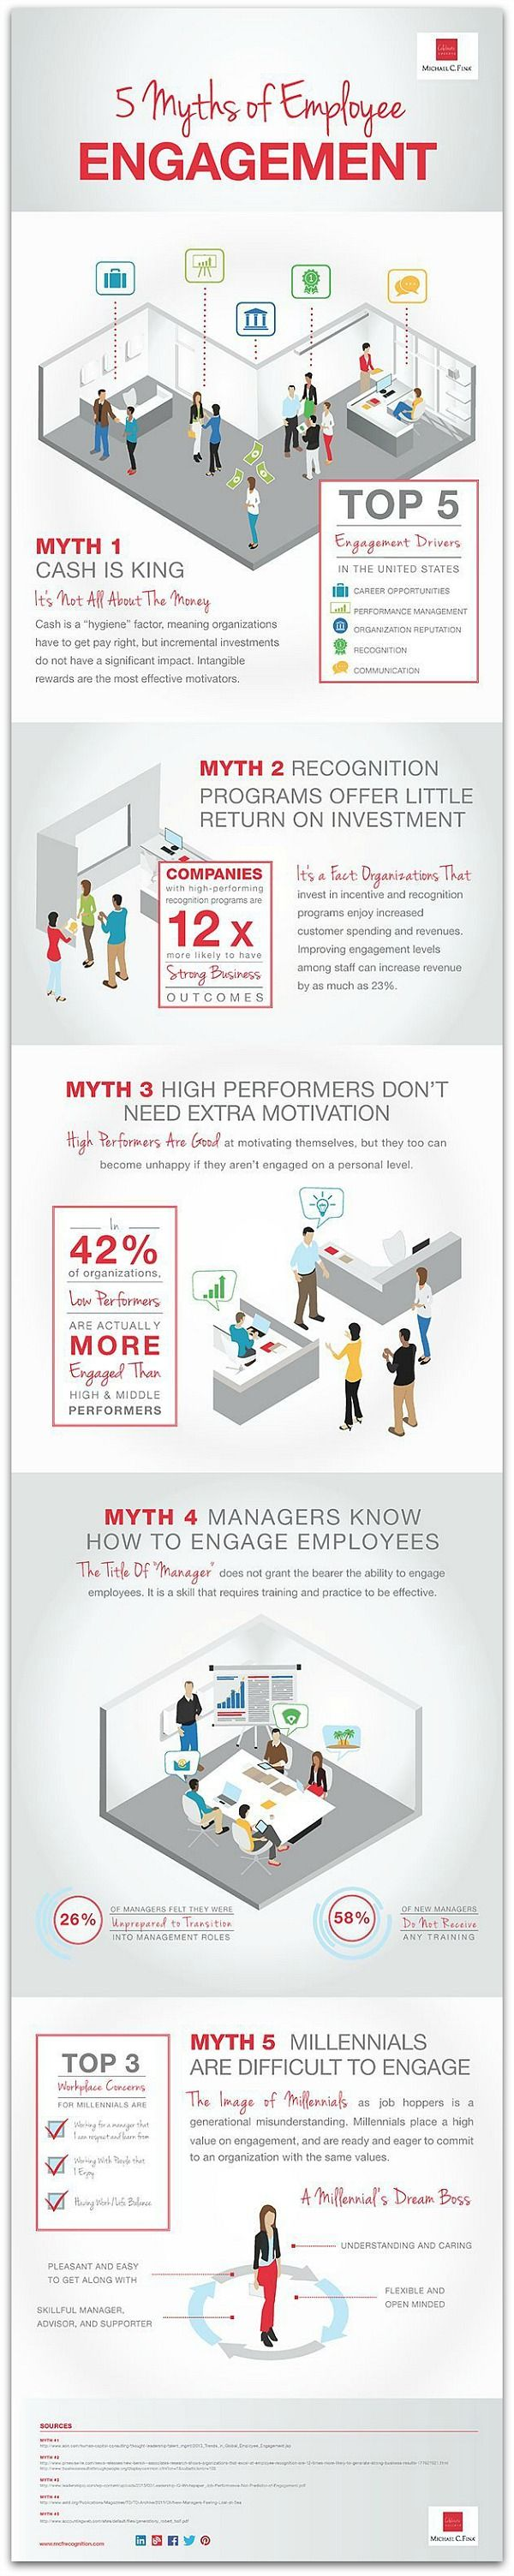 Infographic: 5 employee engagement myths—busted   Managers know how to engage their staff, recognition programs don't improve the bottom line, and other myths that, if you believe them, can harm your organization.